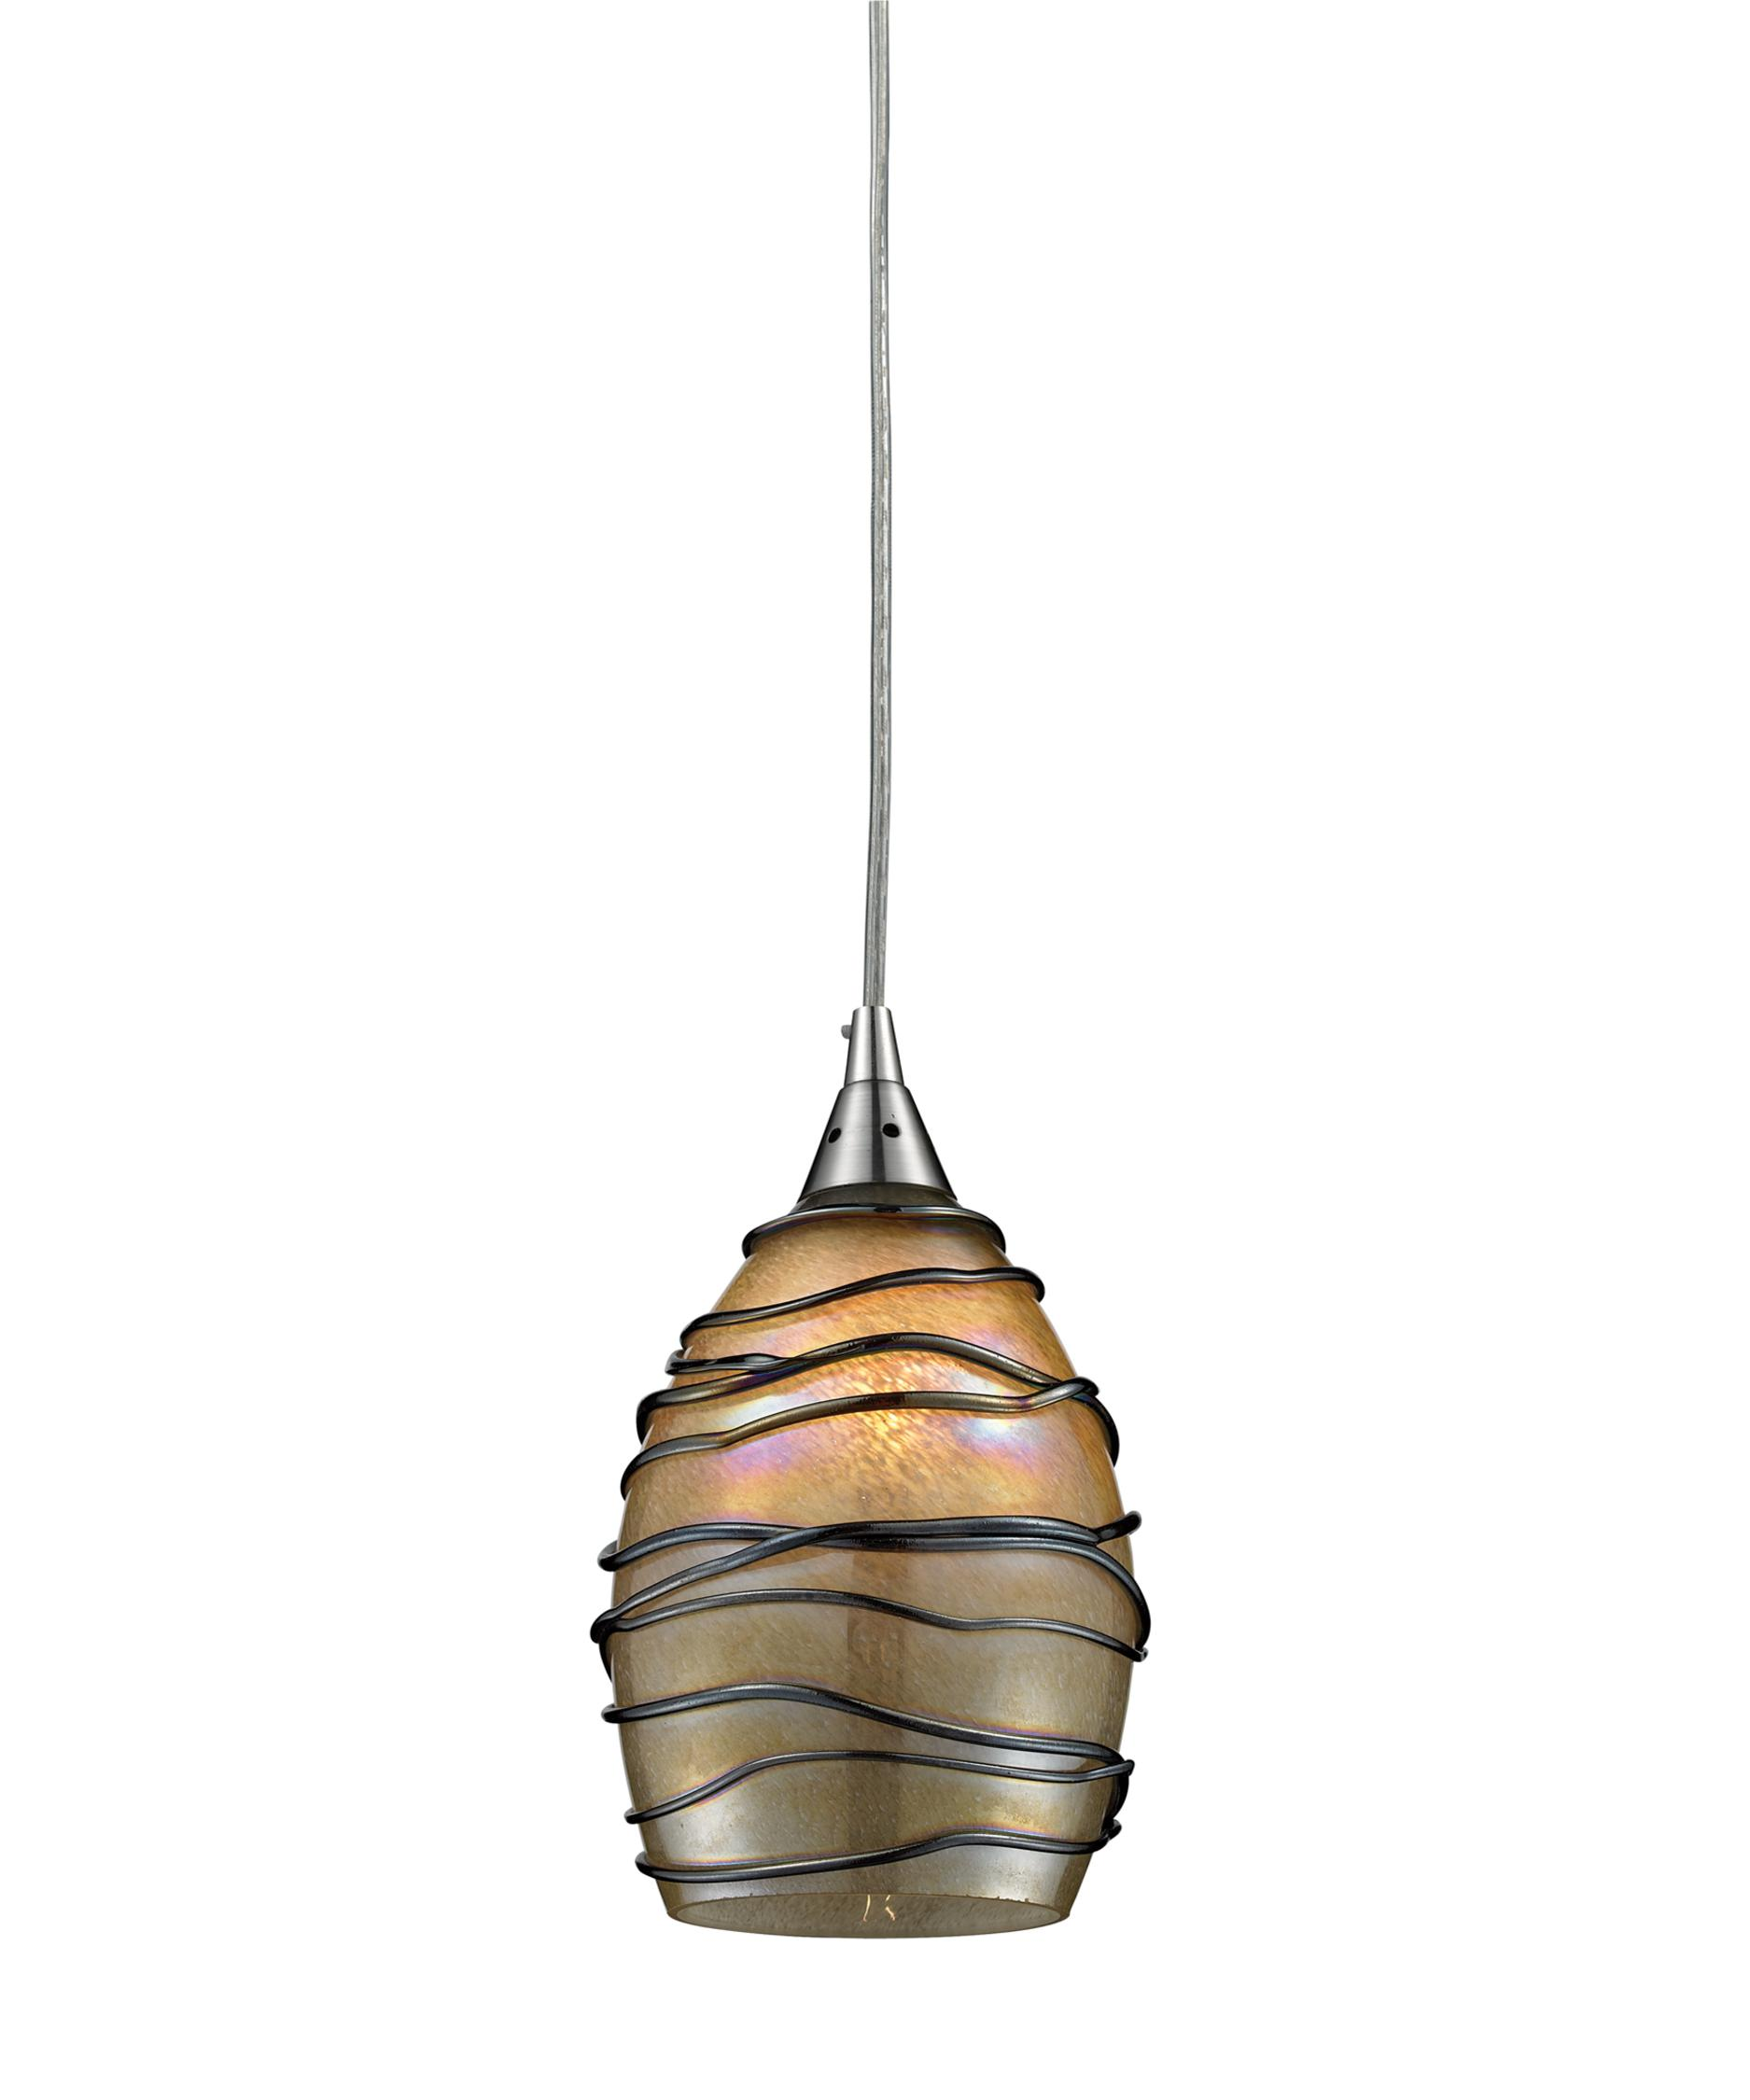 mini pendant lighting fixtures. shown in satin nickel finish mini pendant lighting fixtures